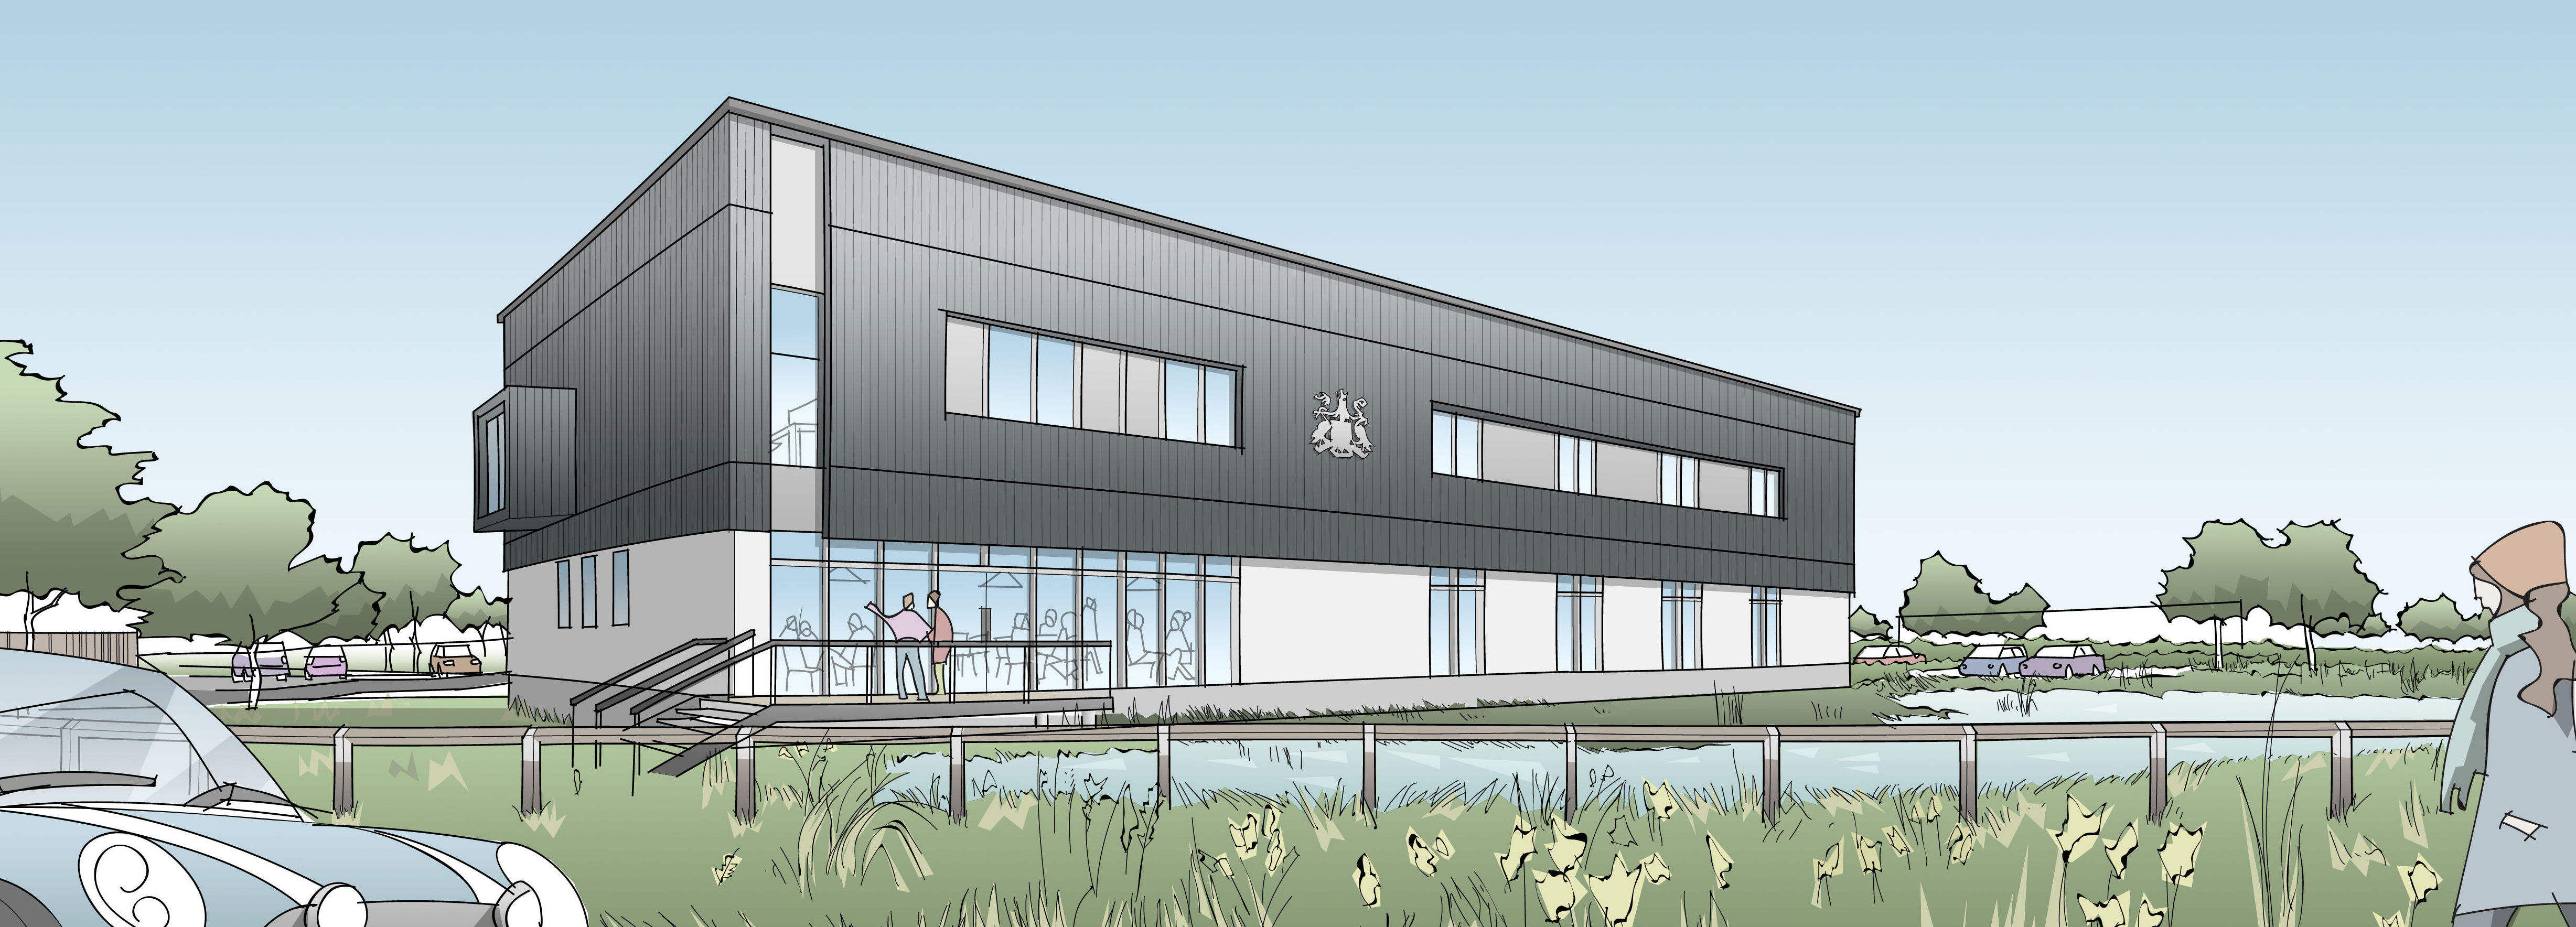 Uni of Lincoln External View Sketch 2.jpg